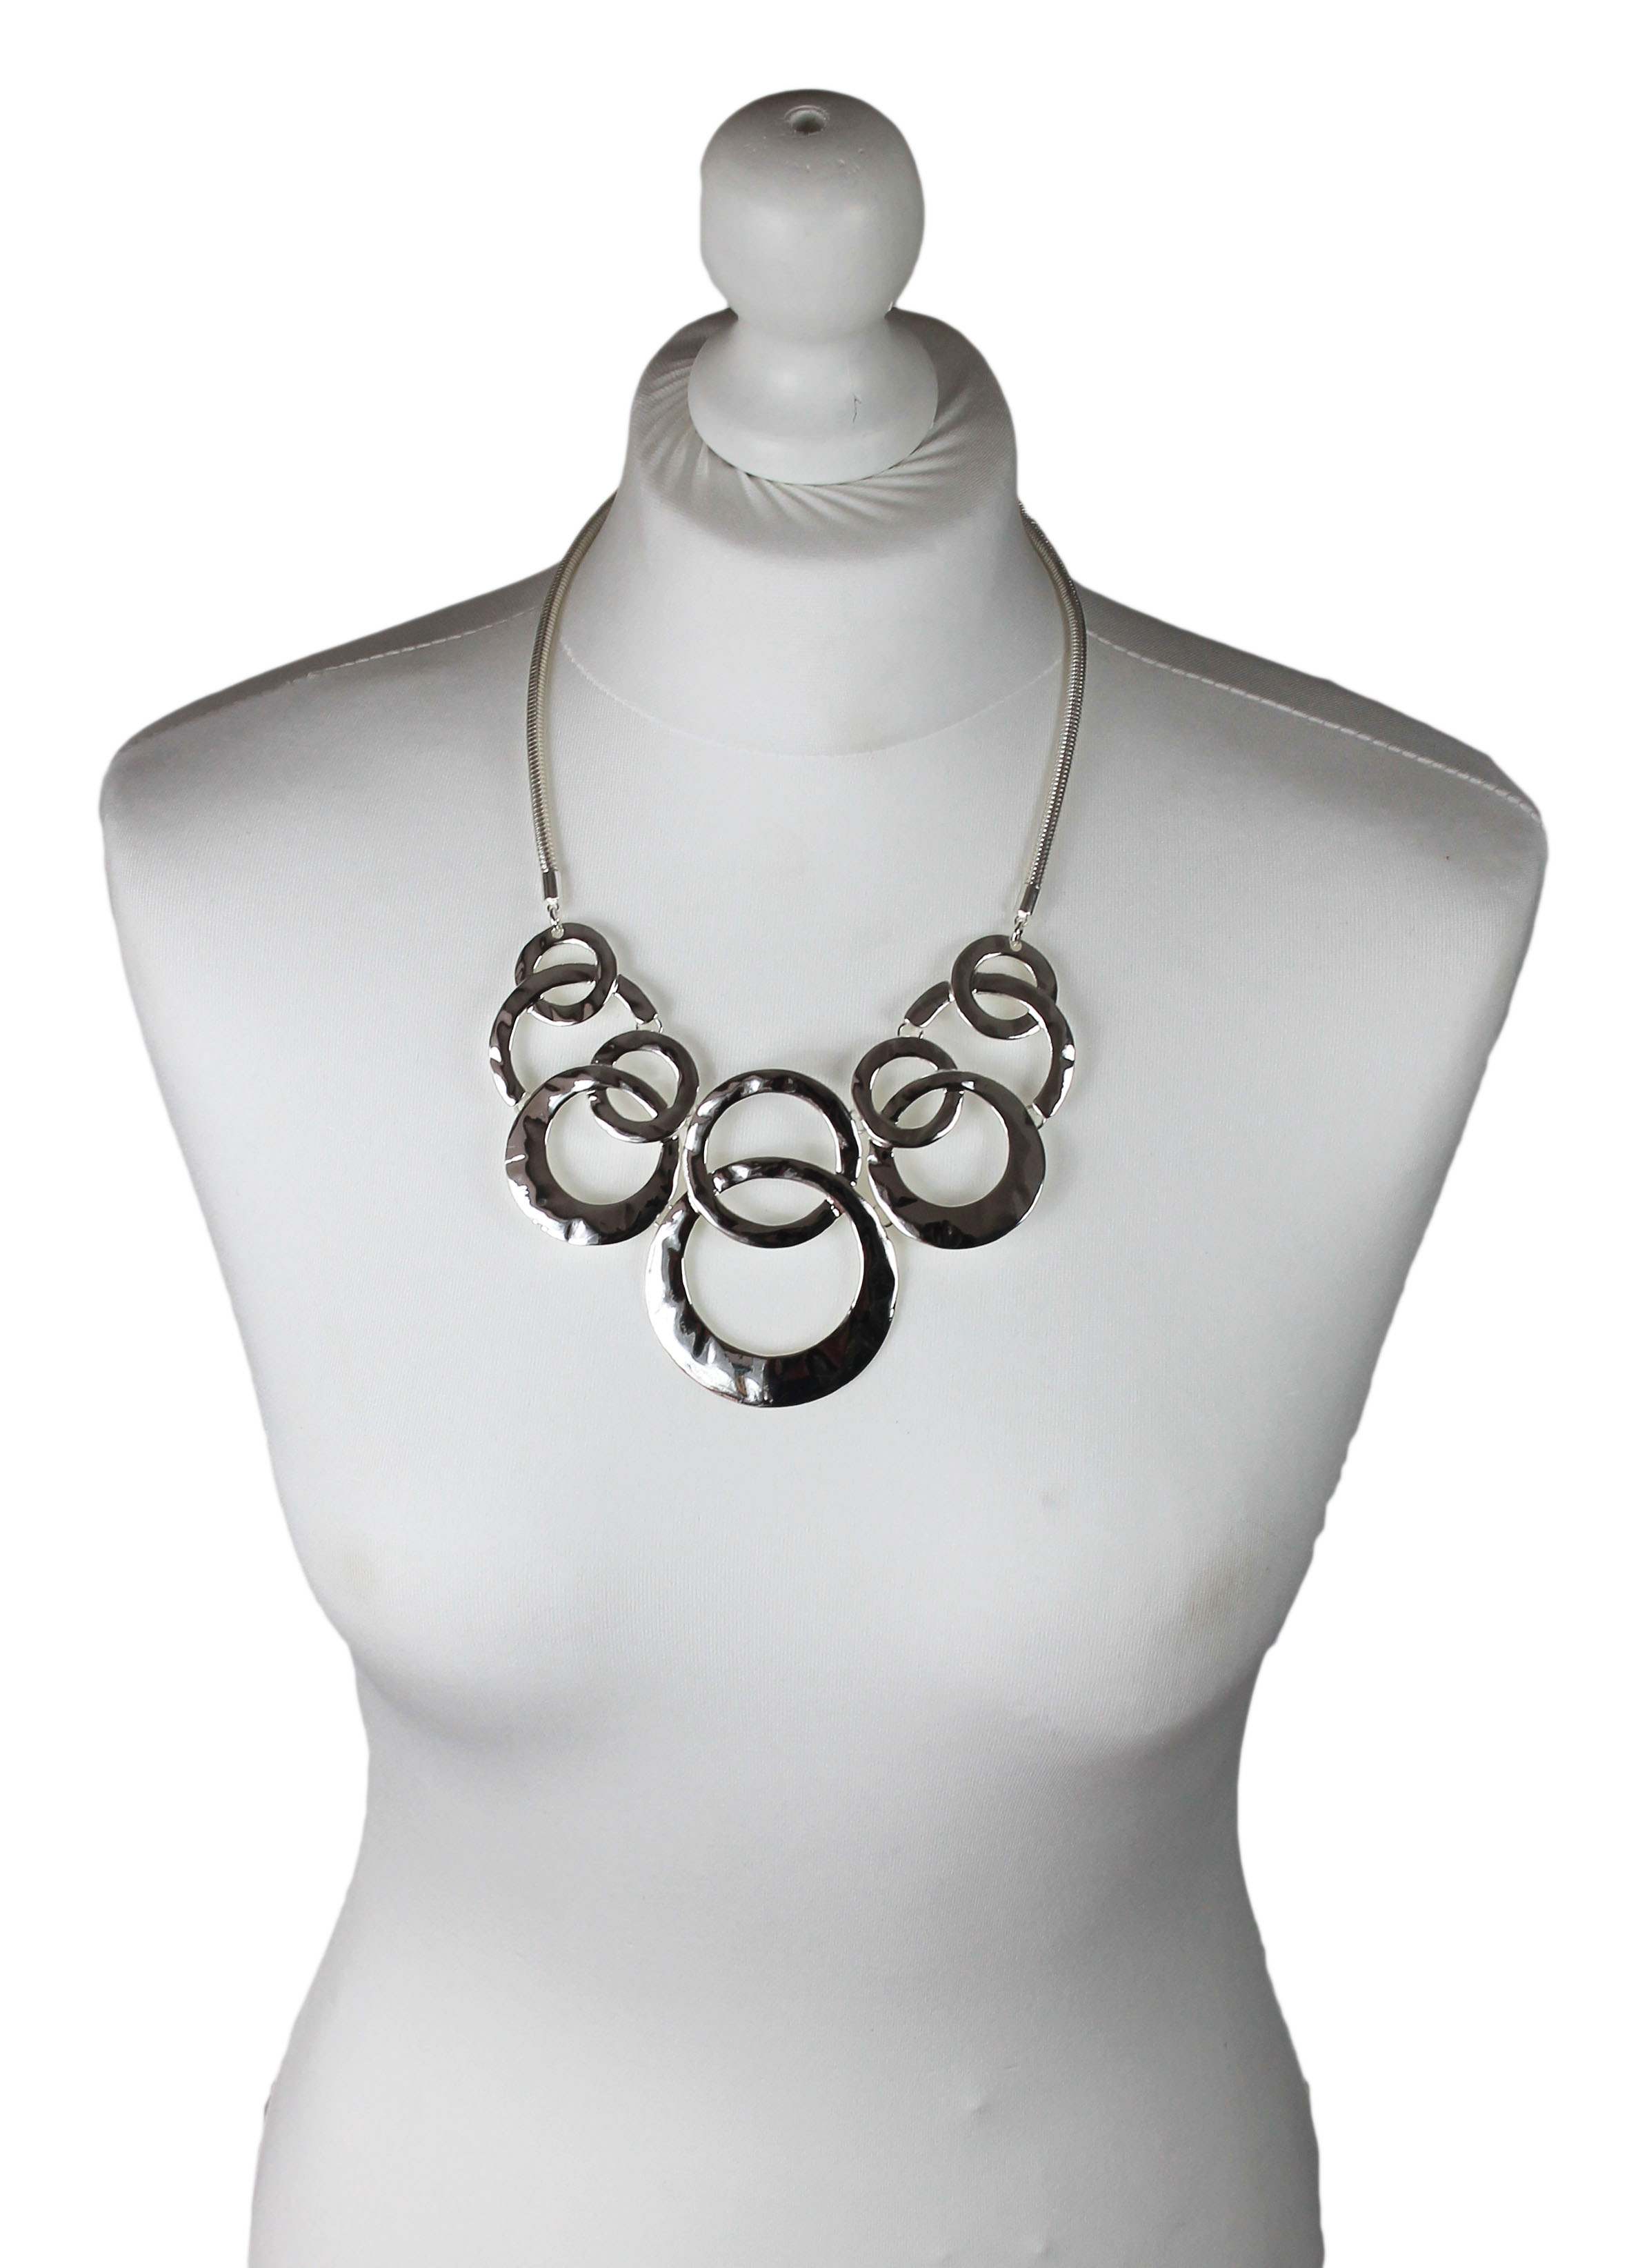 Olympiad silver multiple rings short necklace